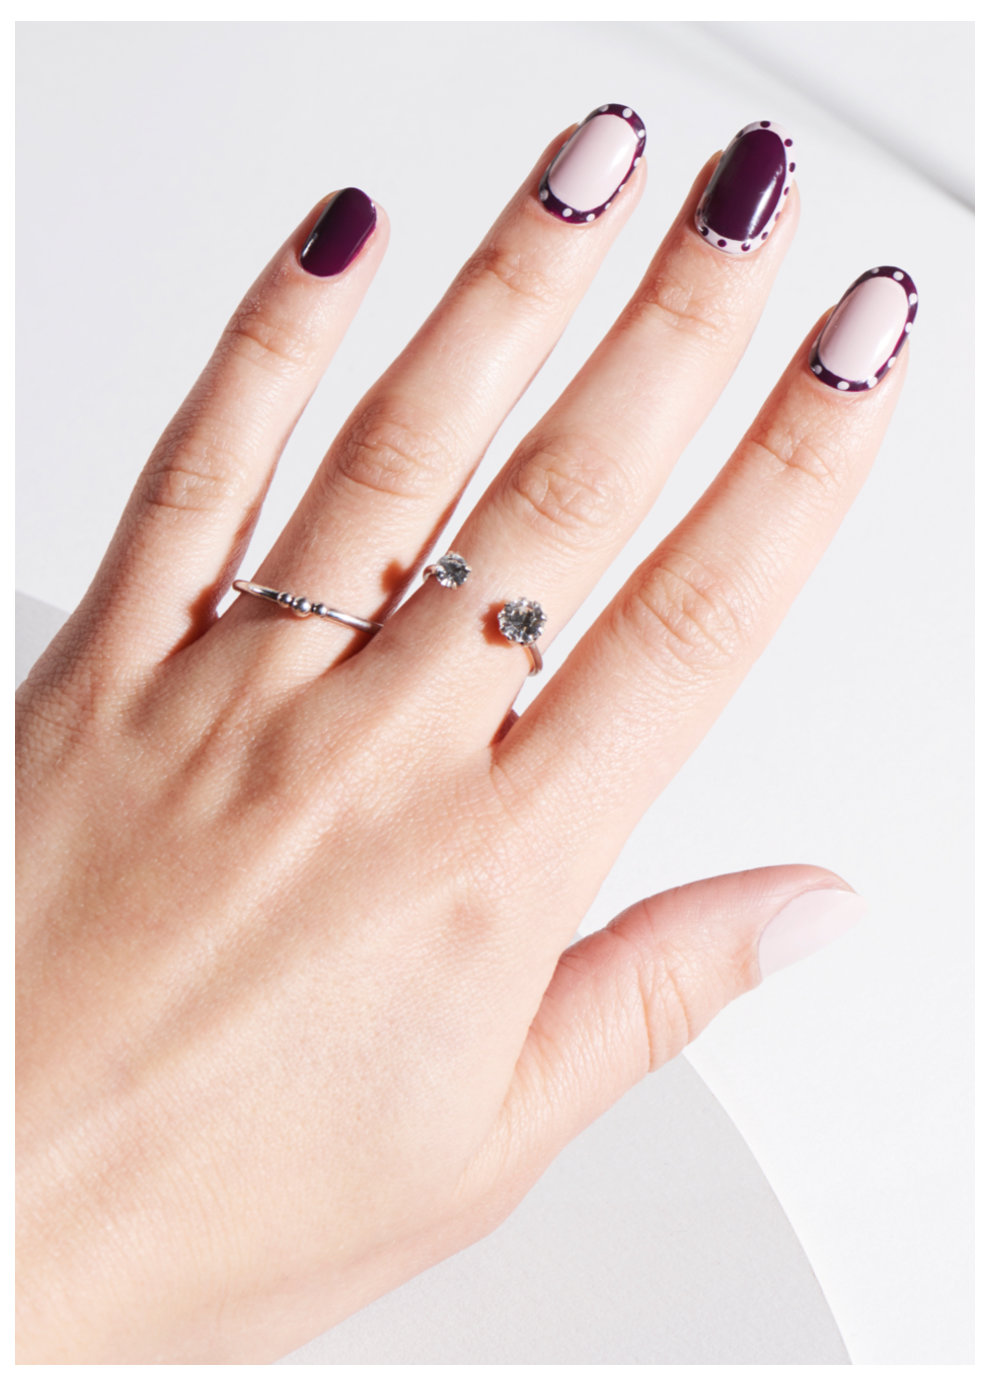 Nail Art Latest Trends: Nail Art Gallery